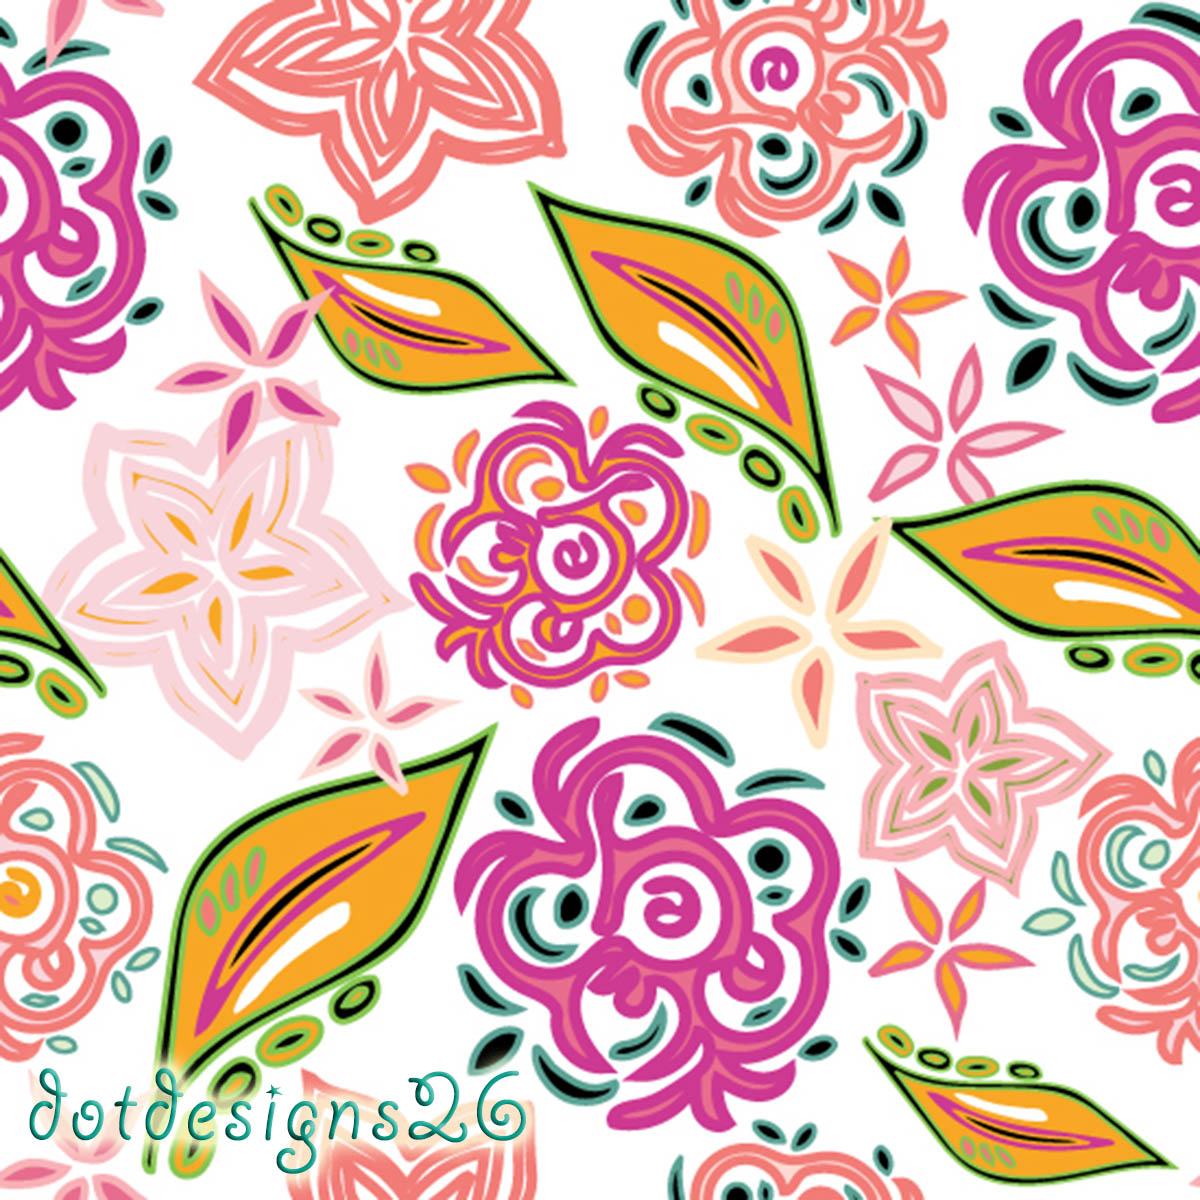 10 Floral Breeze Design wlogo.jpg